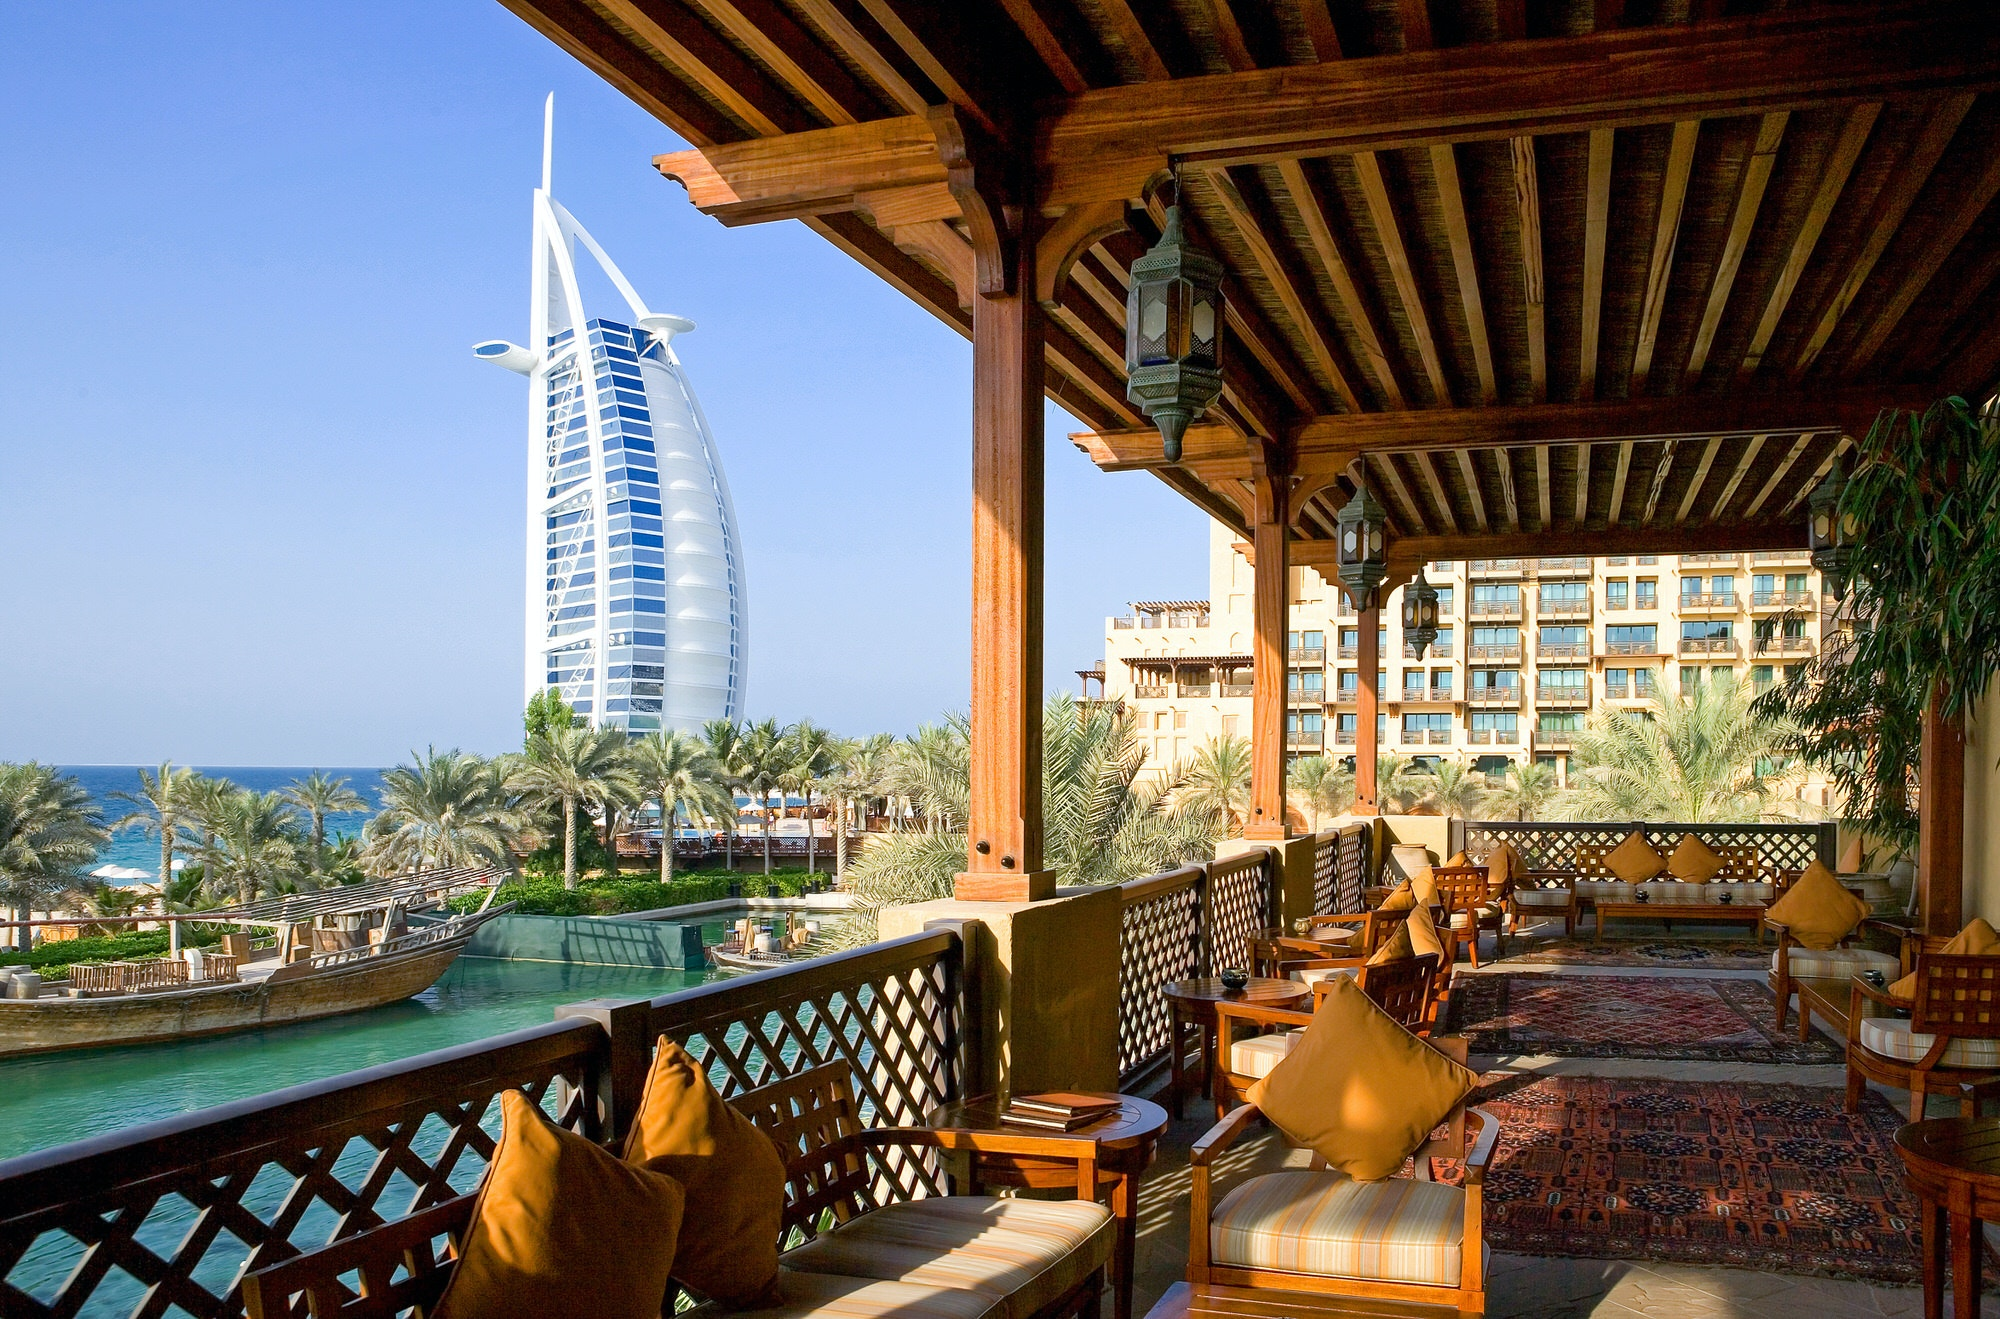 The open-air restaurant of the Madinat Jumeirah resort, in the background the Burj al Arab tower